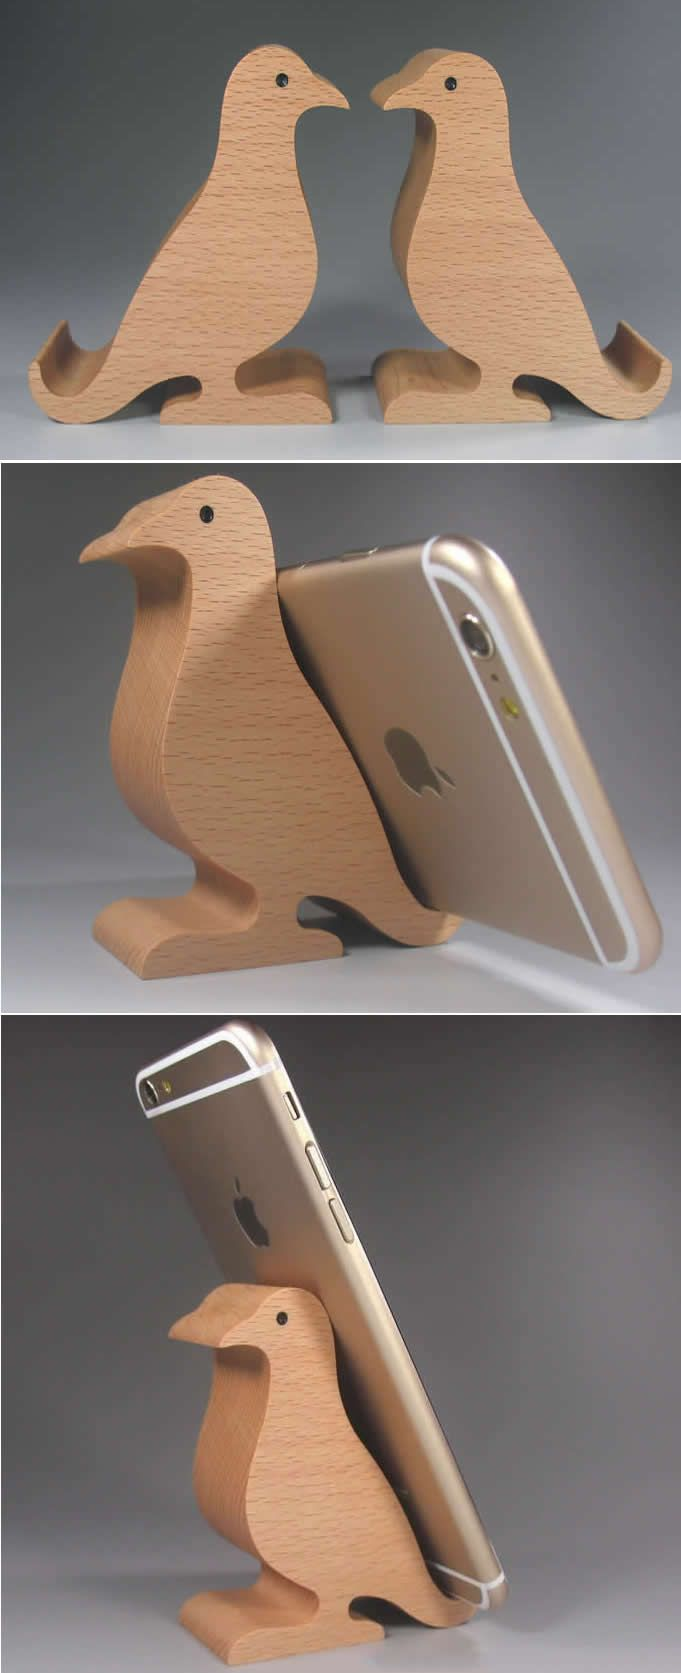 Wooden Bird Shaped Mobile Phone iPad Holder Stand | Woodworking ...